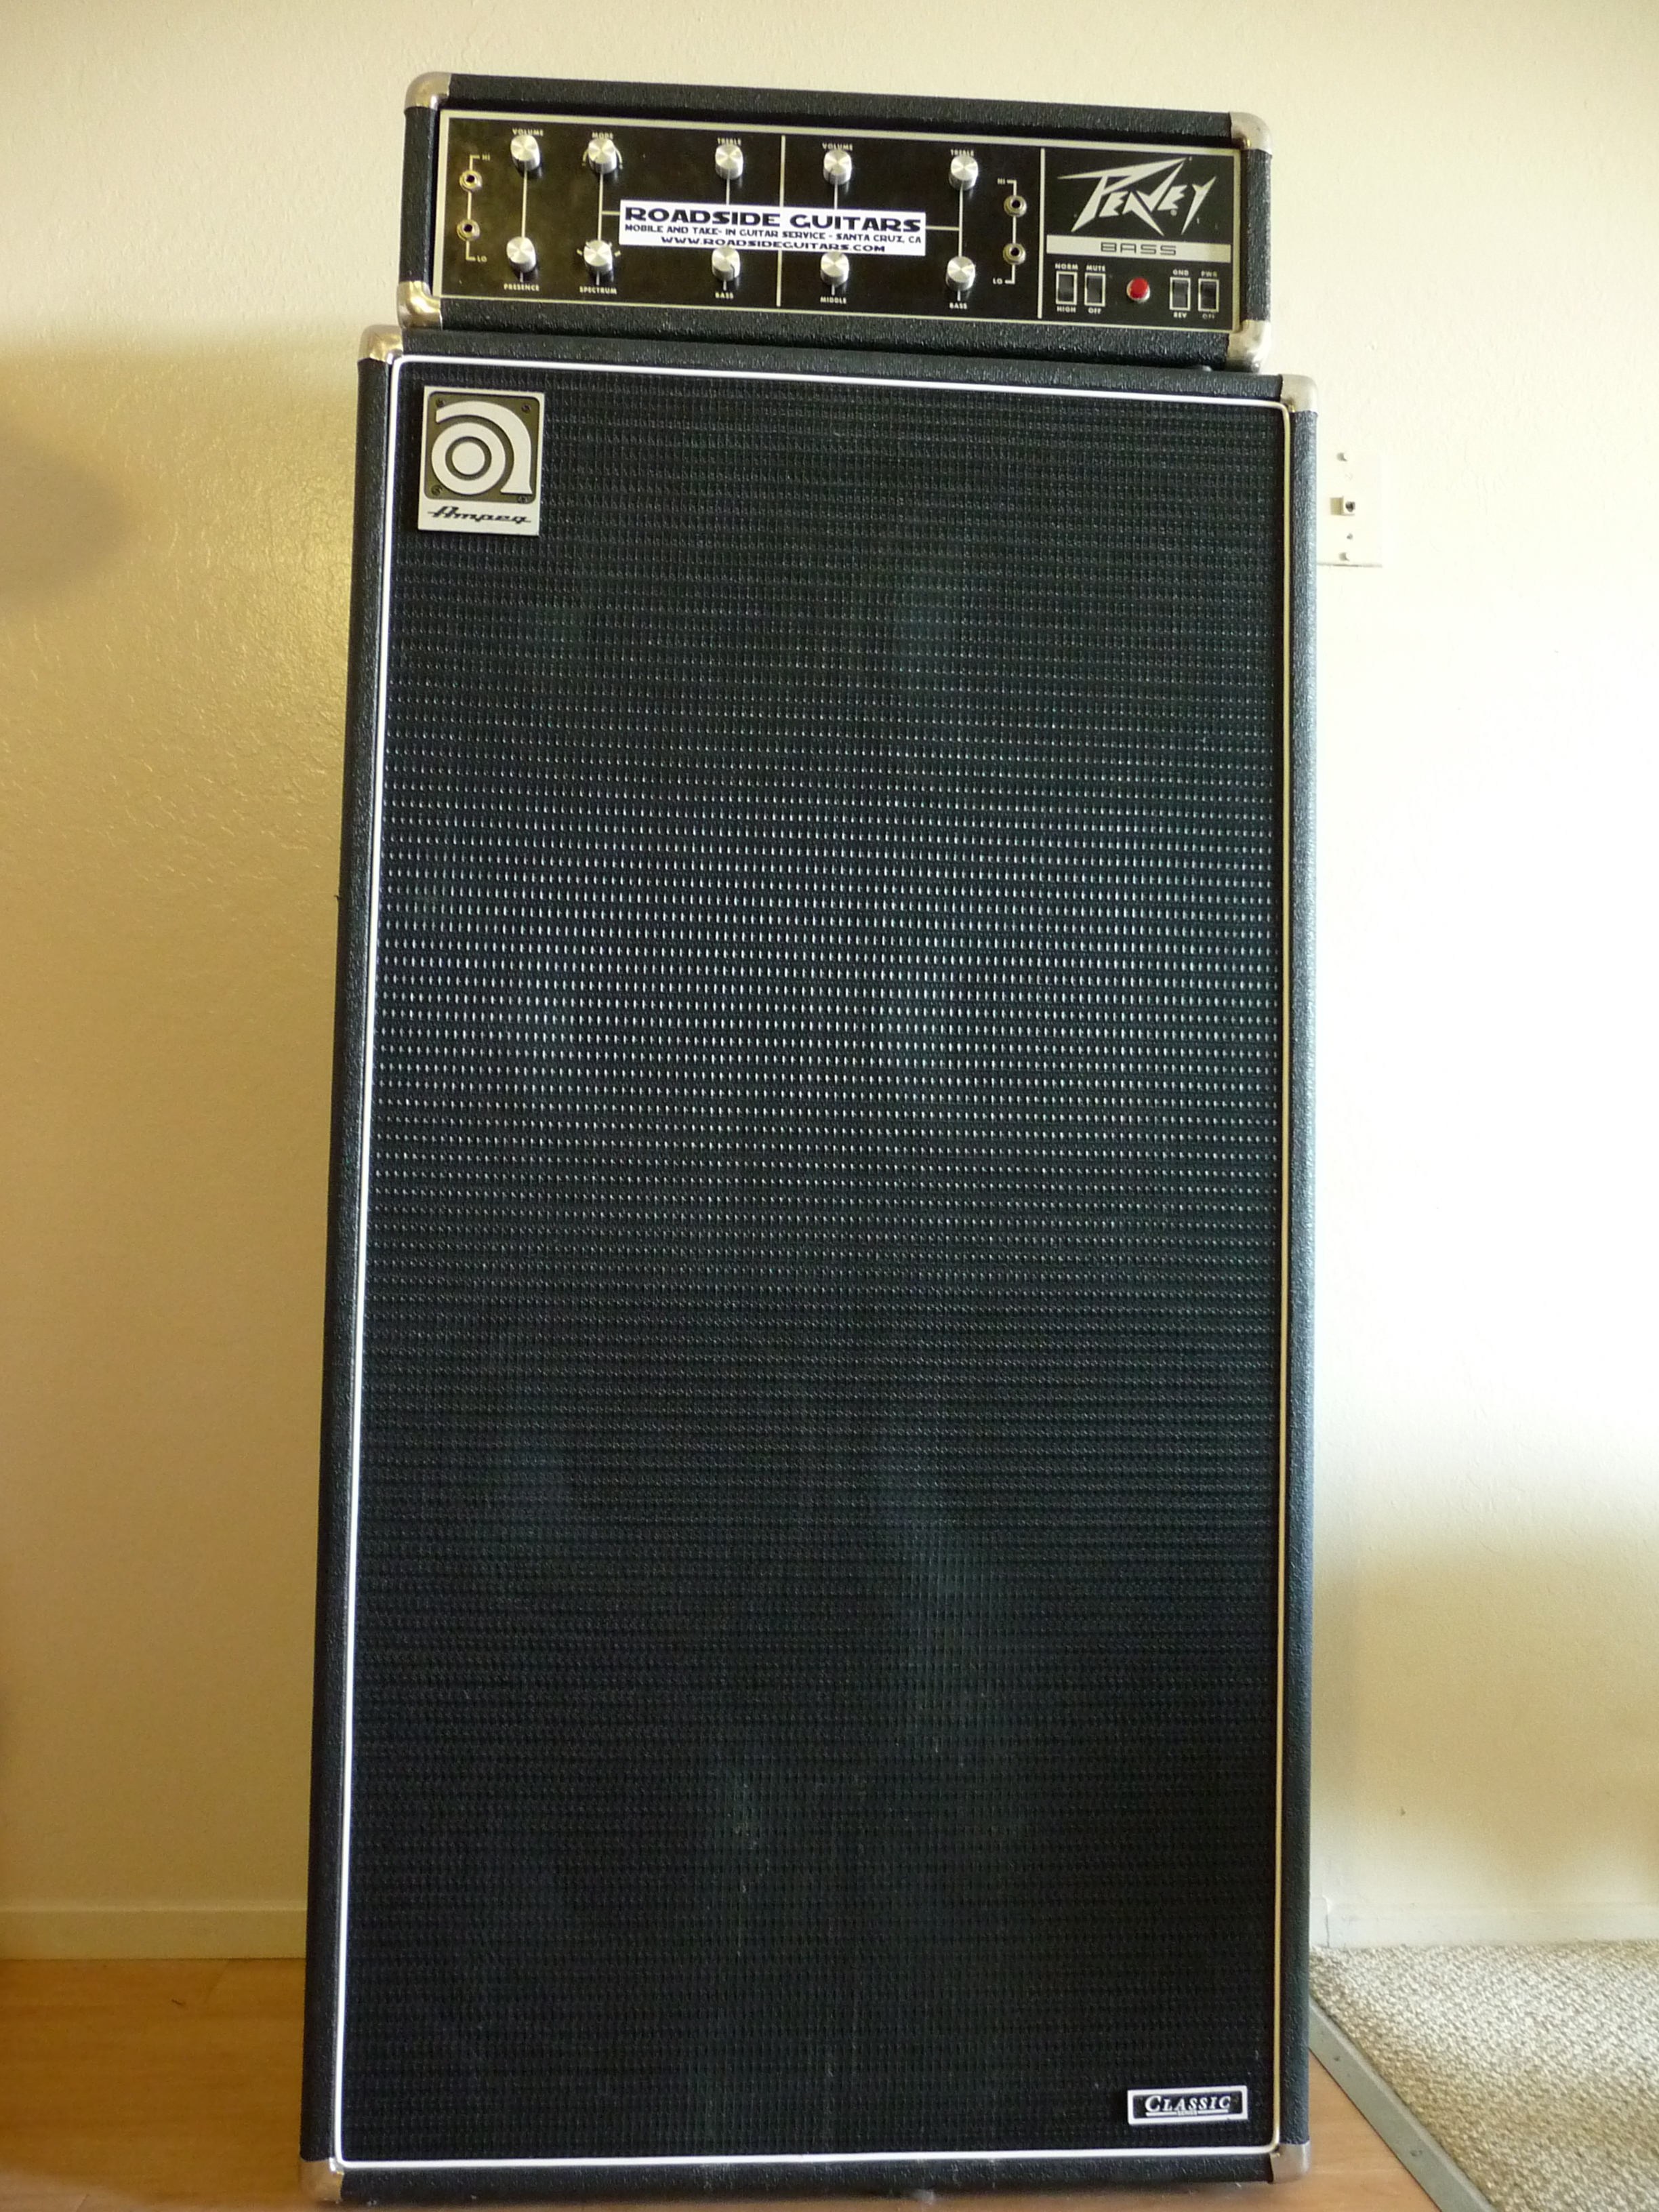 Dating ampeg cabinets